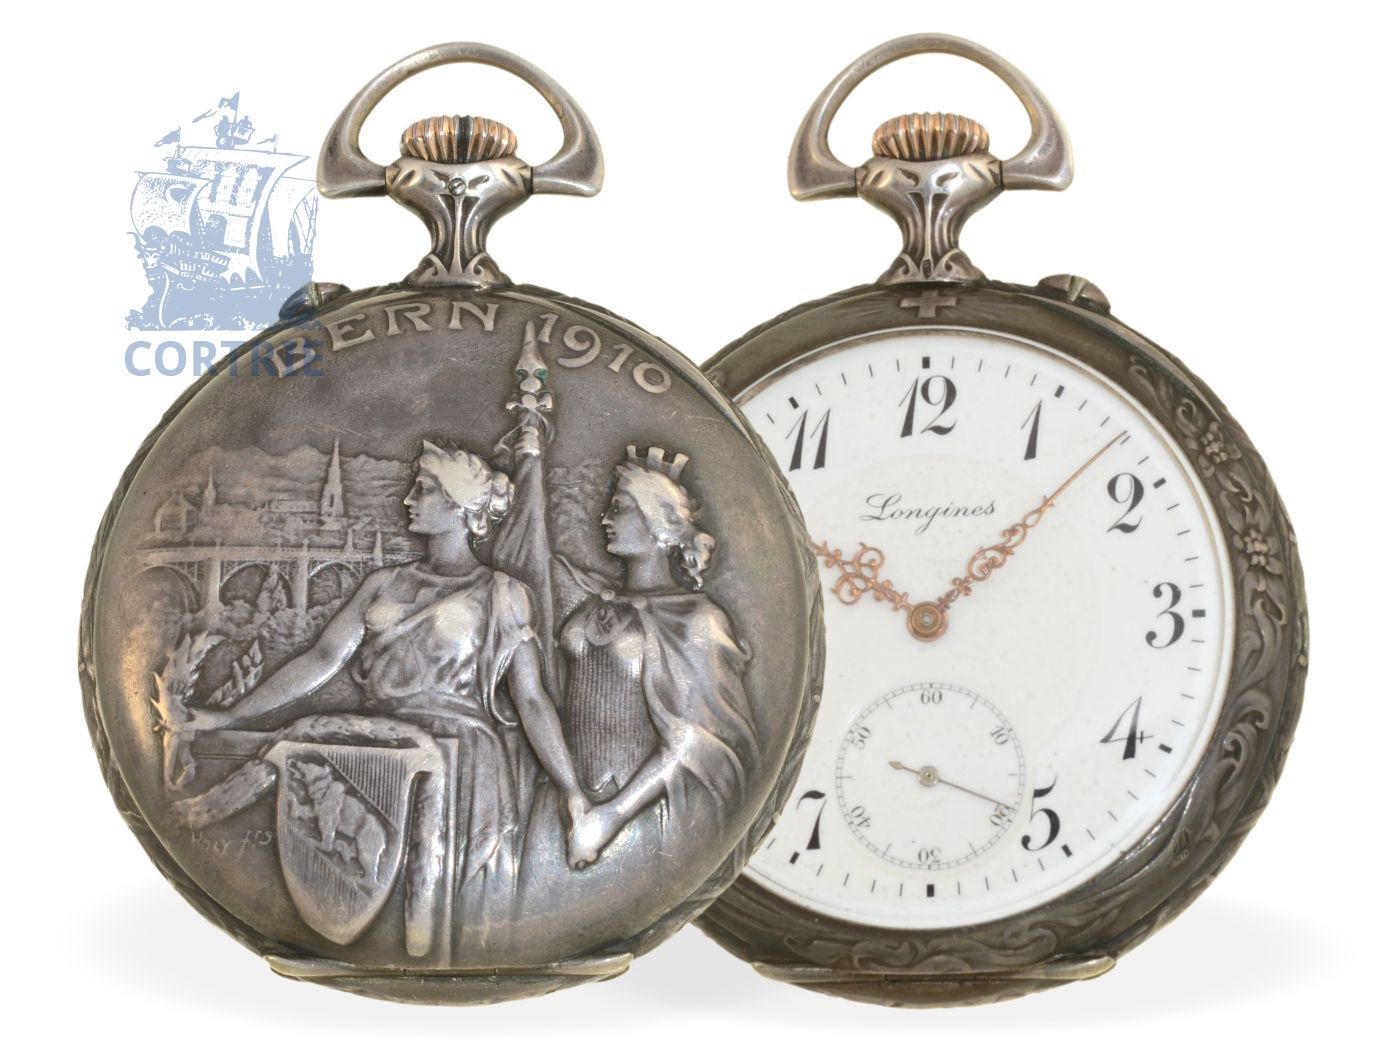 Pocket watch: extremely rare marksman watch, excellent condition, Ankerchronometer Longines, Bern 1910-